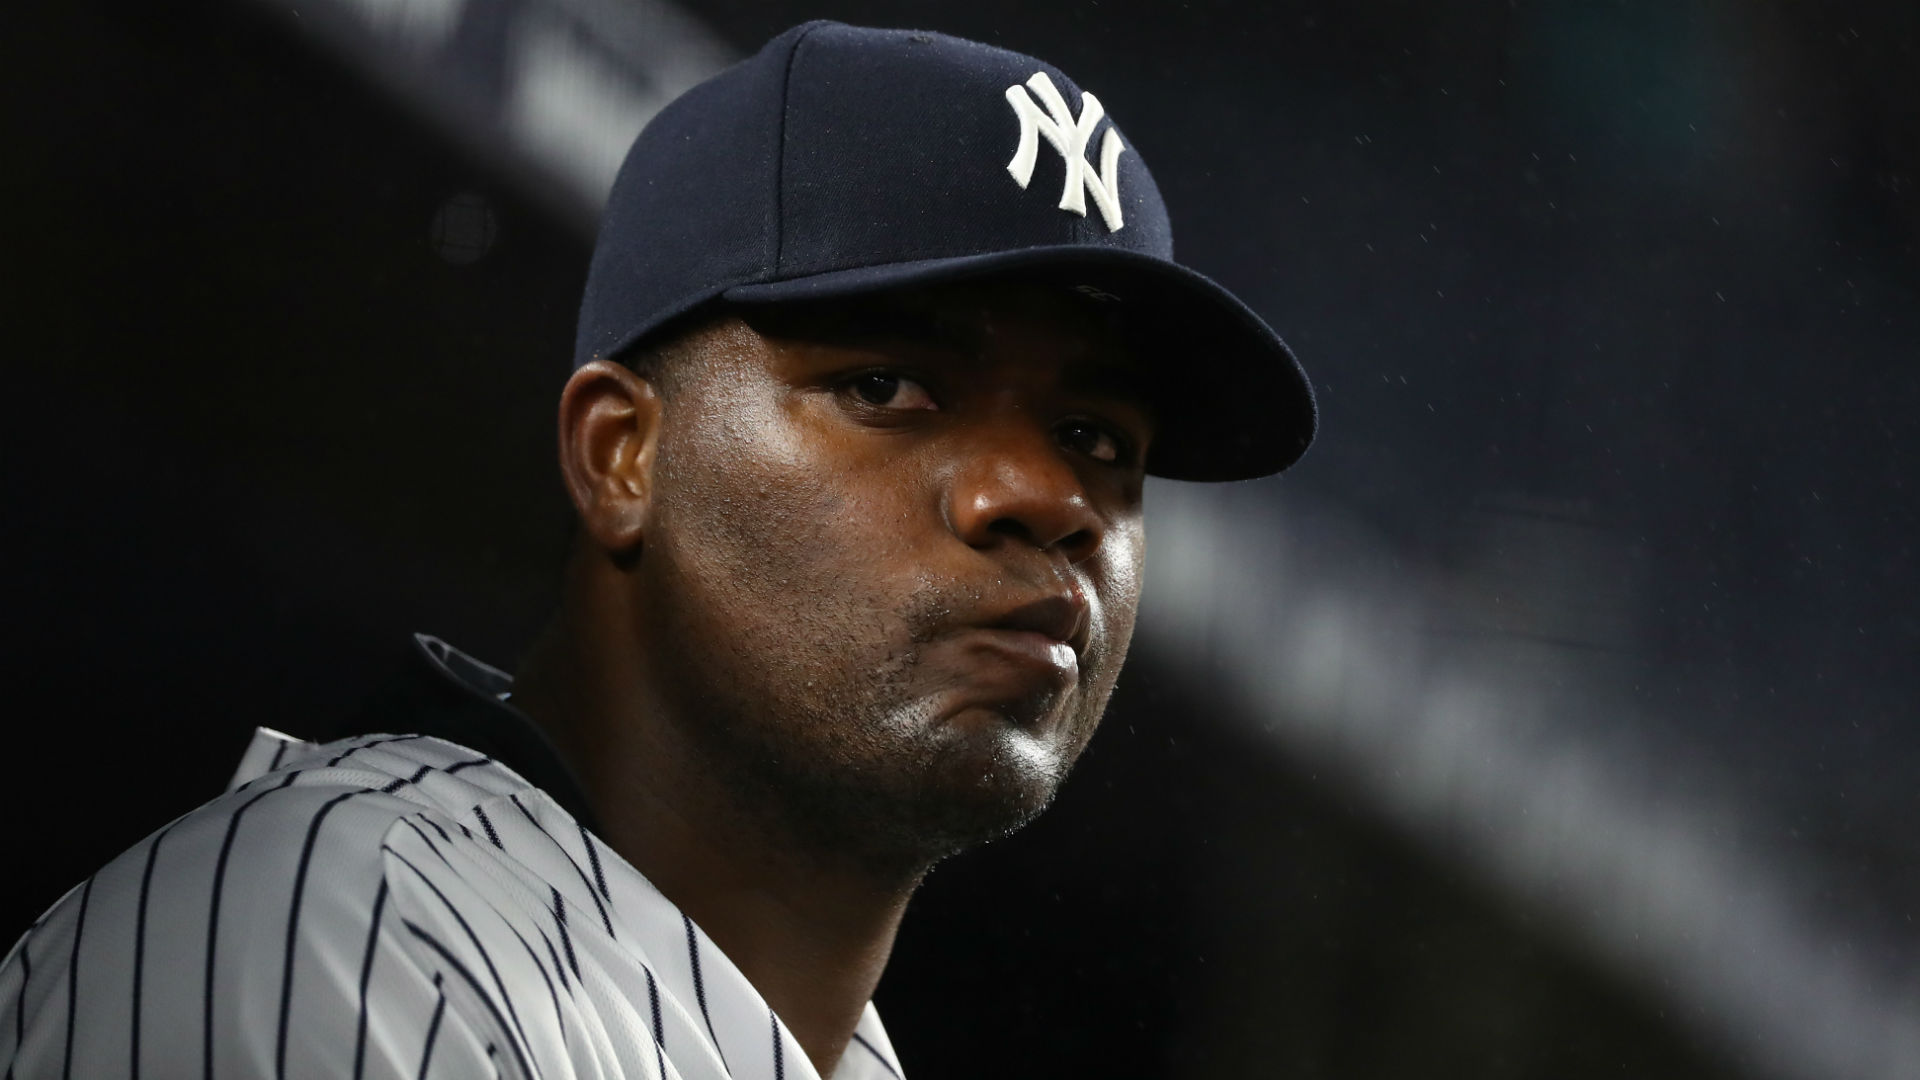 Yankees starter Michael Pineda reportedly might need Tommy John surgery